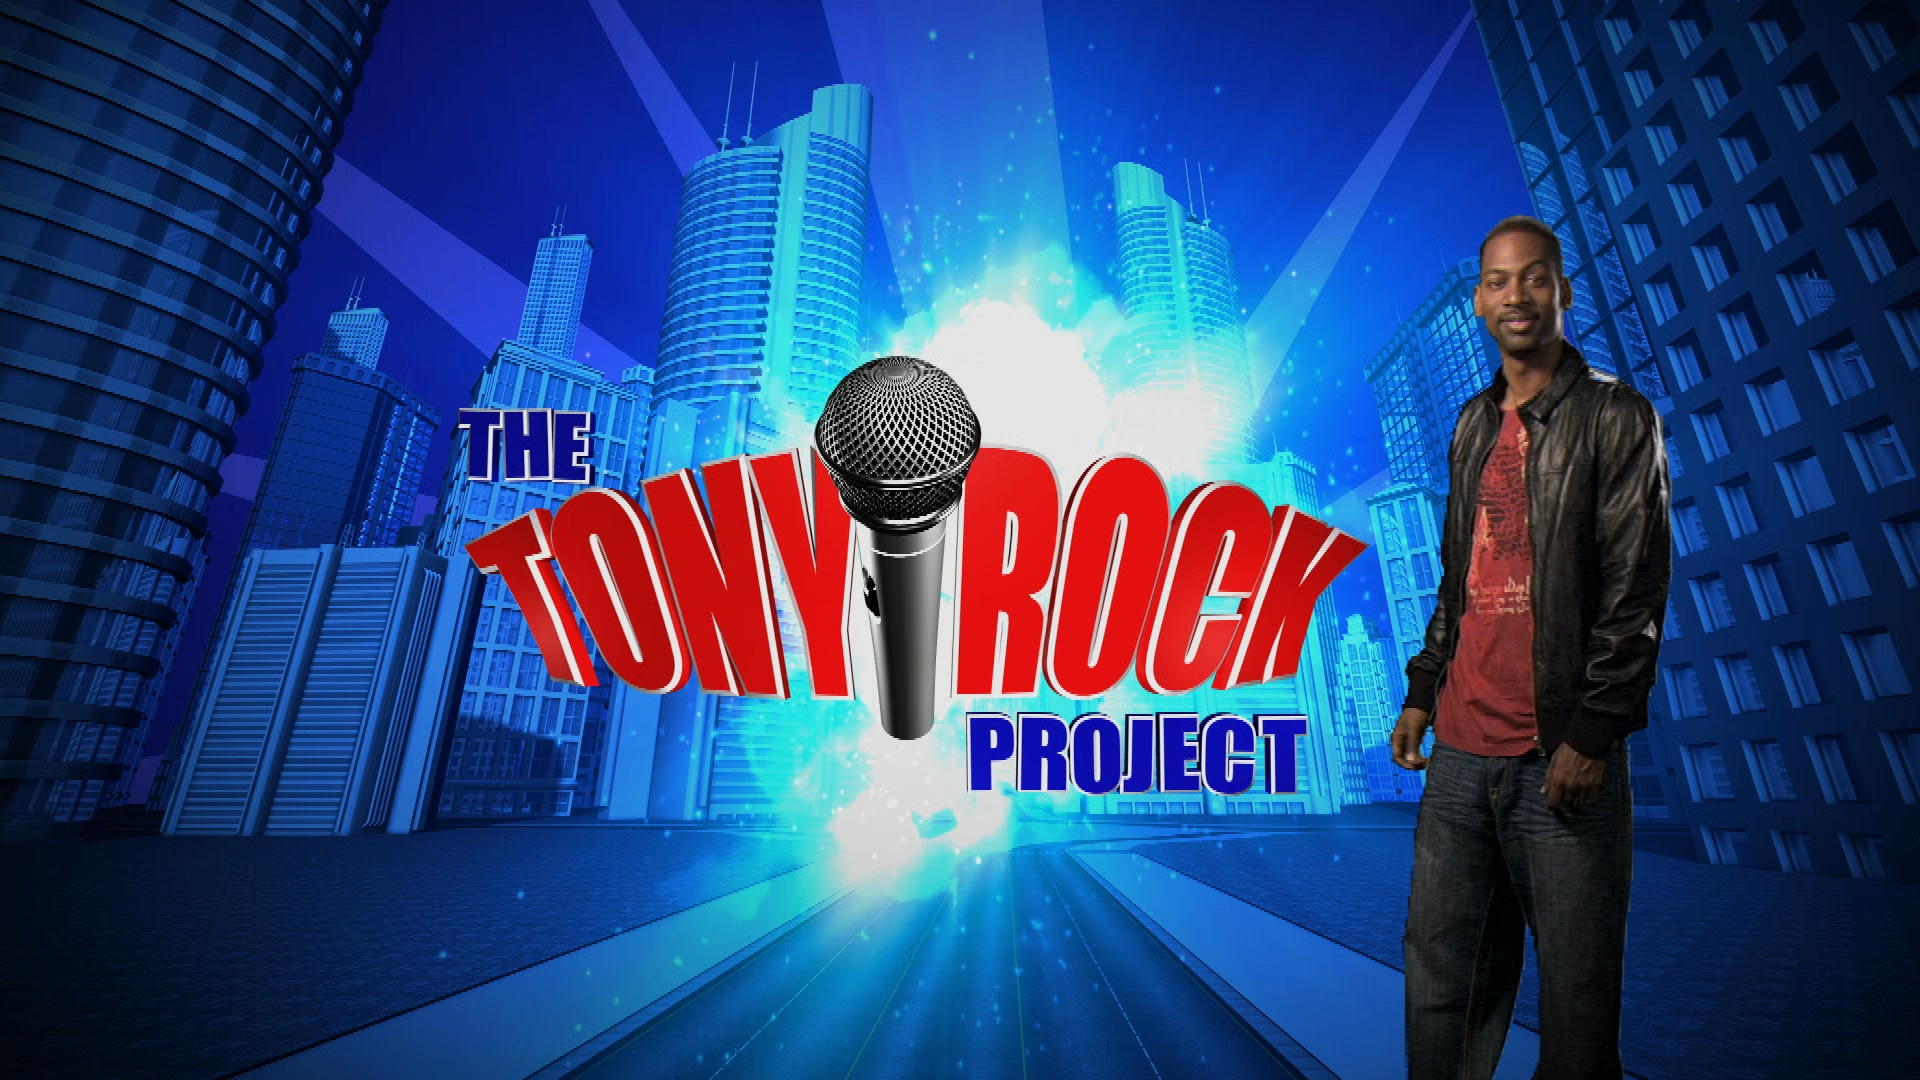 THE TONY ROCK PROJECT